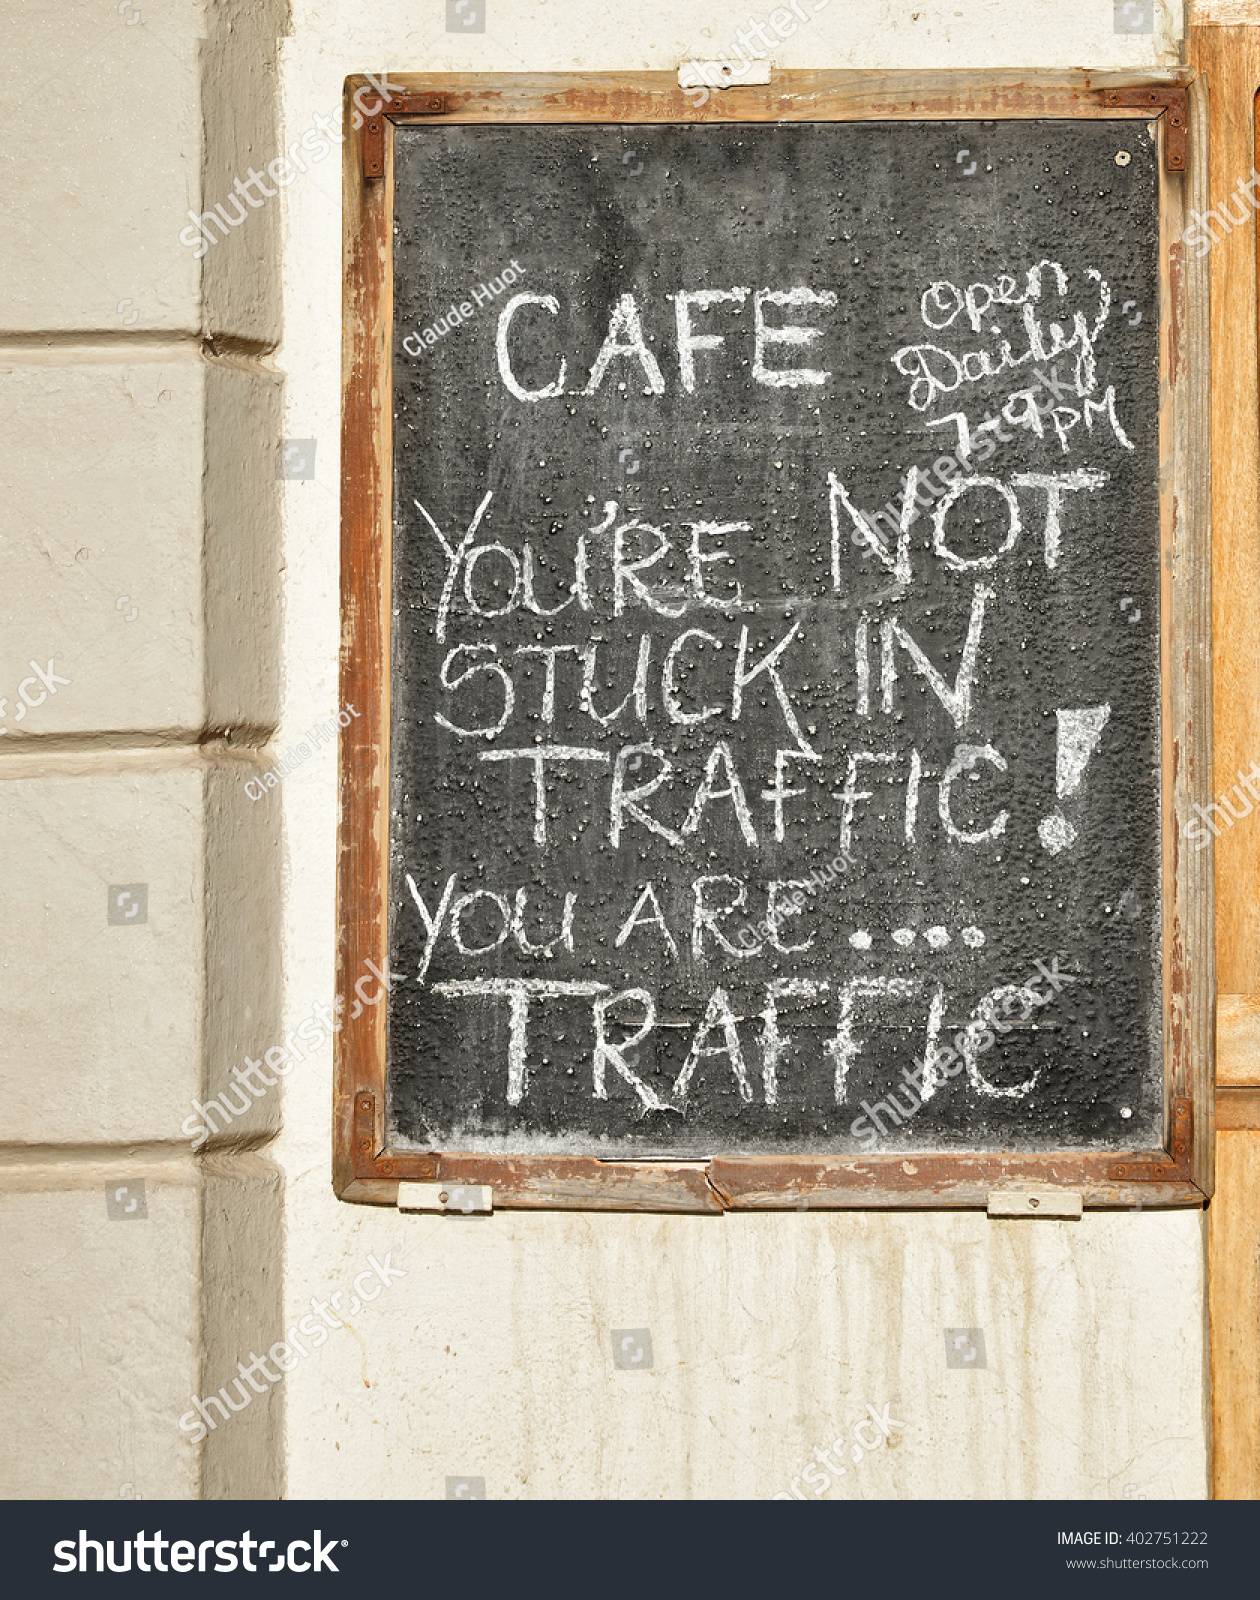 Humorous sign posted in front of a cafe on a busy street